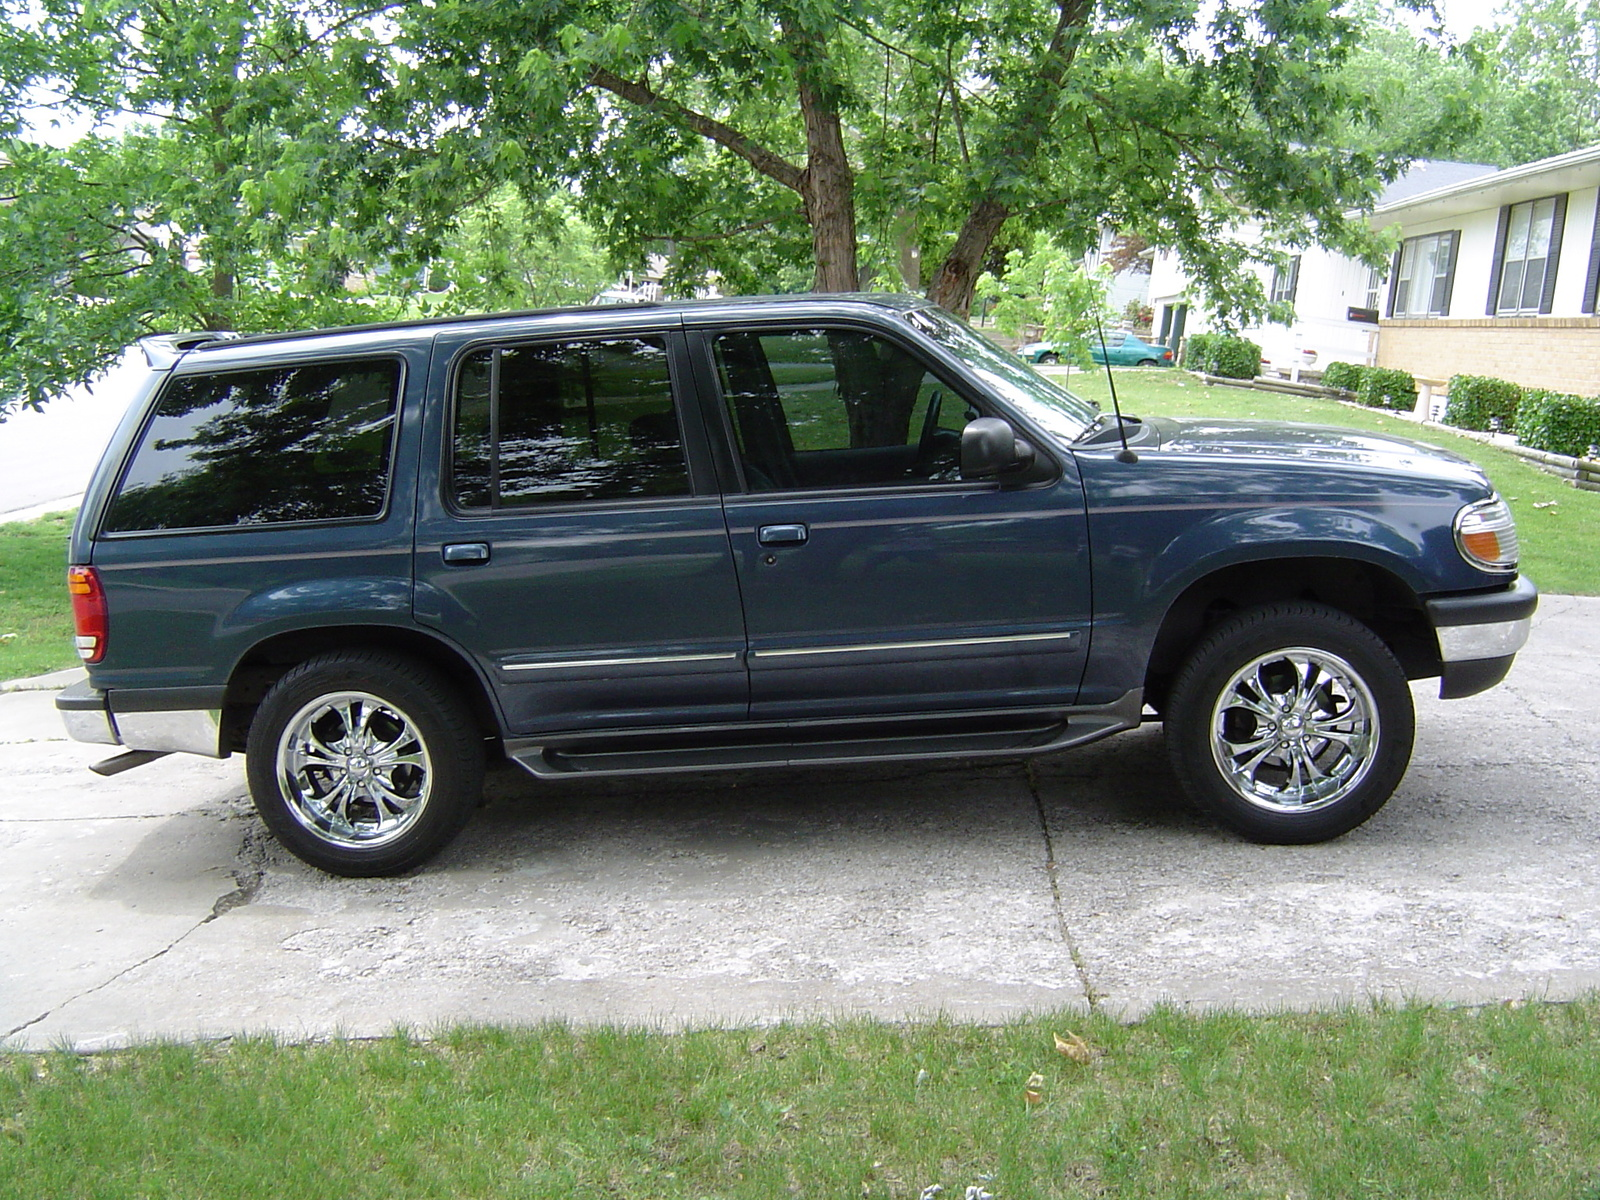 1998 ford explorer image 8